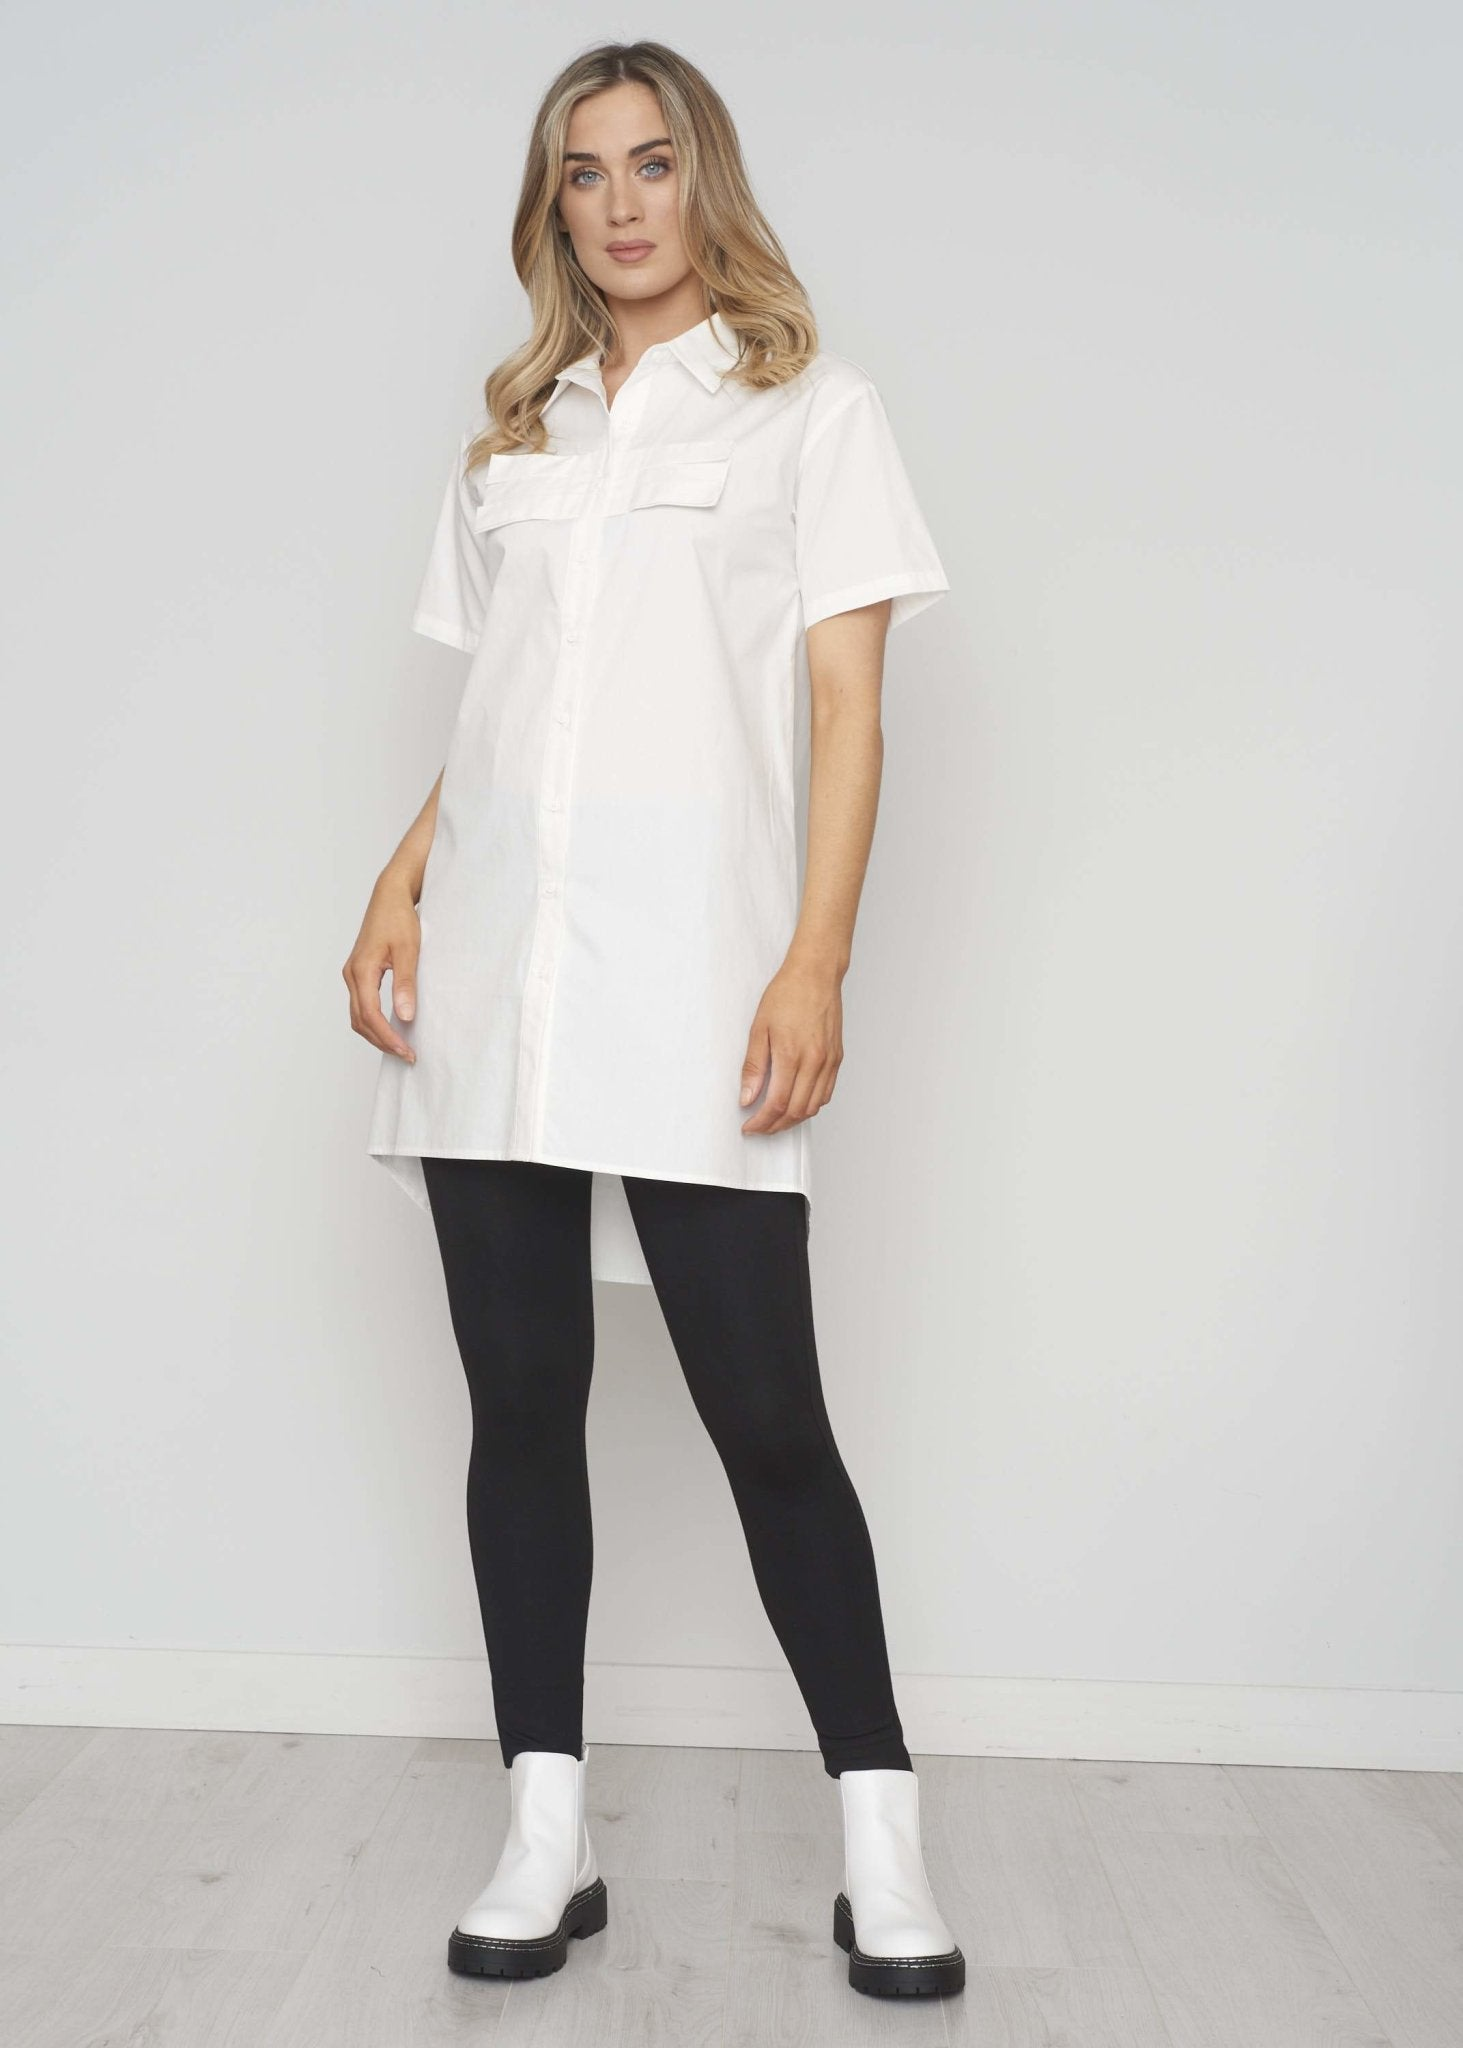 Frankie Longline Shirt In White - The Walk in Wardrobe